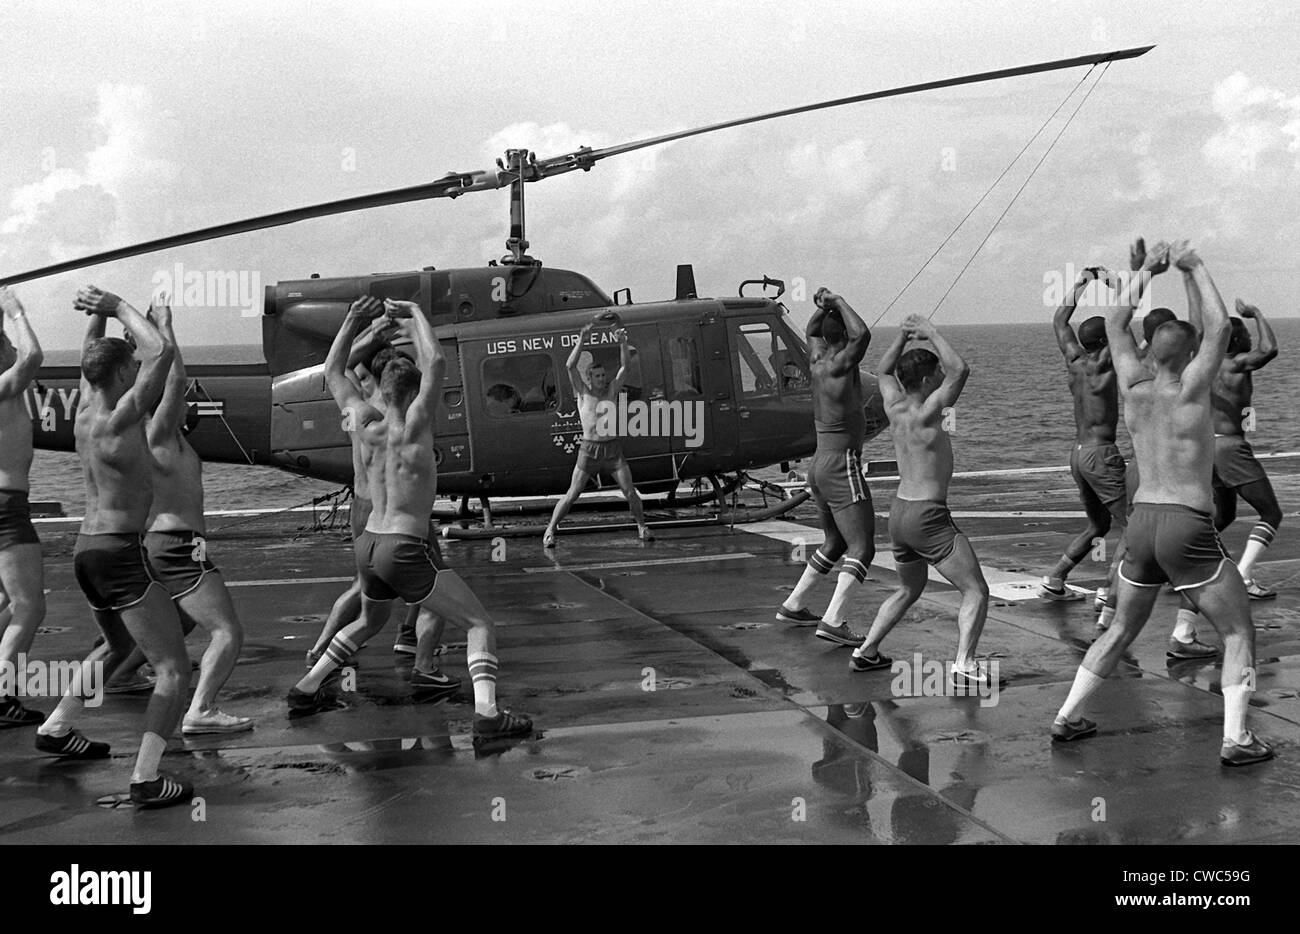 Marines doing jumping jacks on the deck of the amphibious assault ship USS NEW ORLEANS. Aug. 1 1982. (BSLOC 2011 Stock Photo